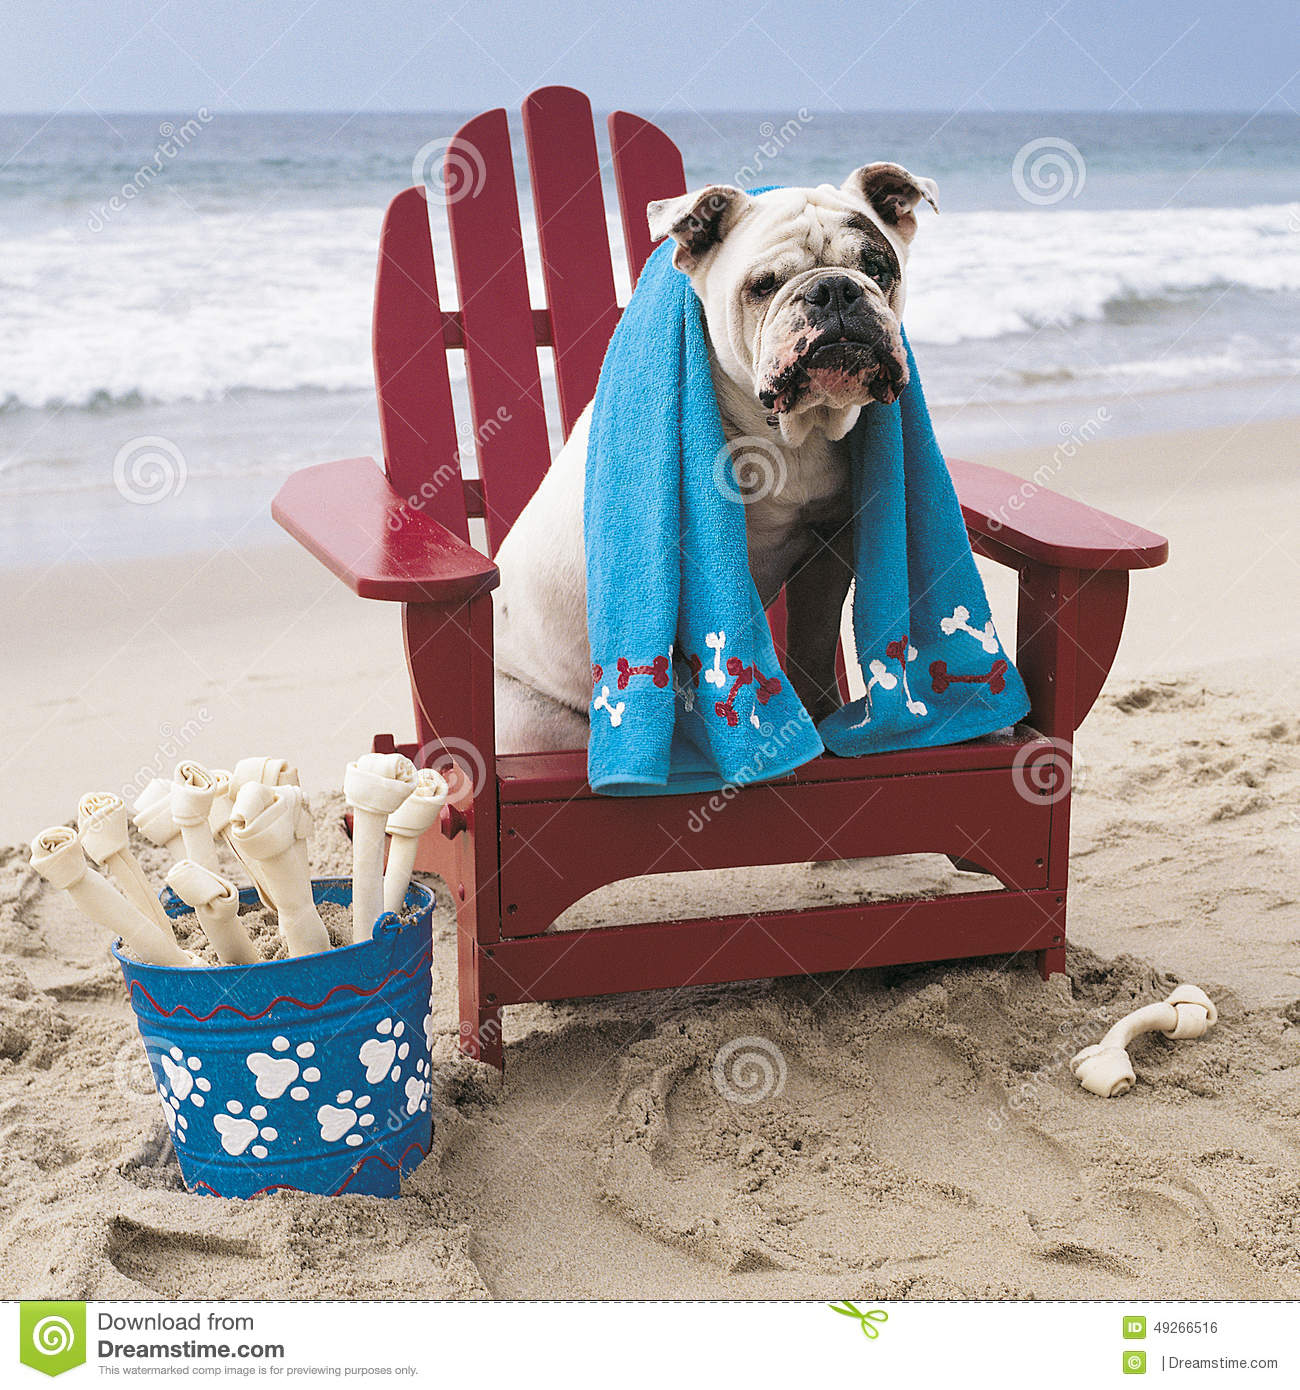 Adirondack chairs clipartsilhouette free images at clkercom - Clipart Images Dog Bone Clipart Bulldog On Red Adirondack Chair On Beach Stock Photo